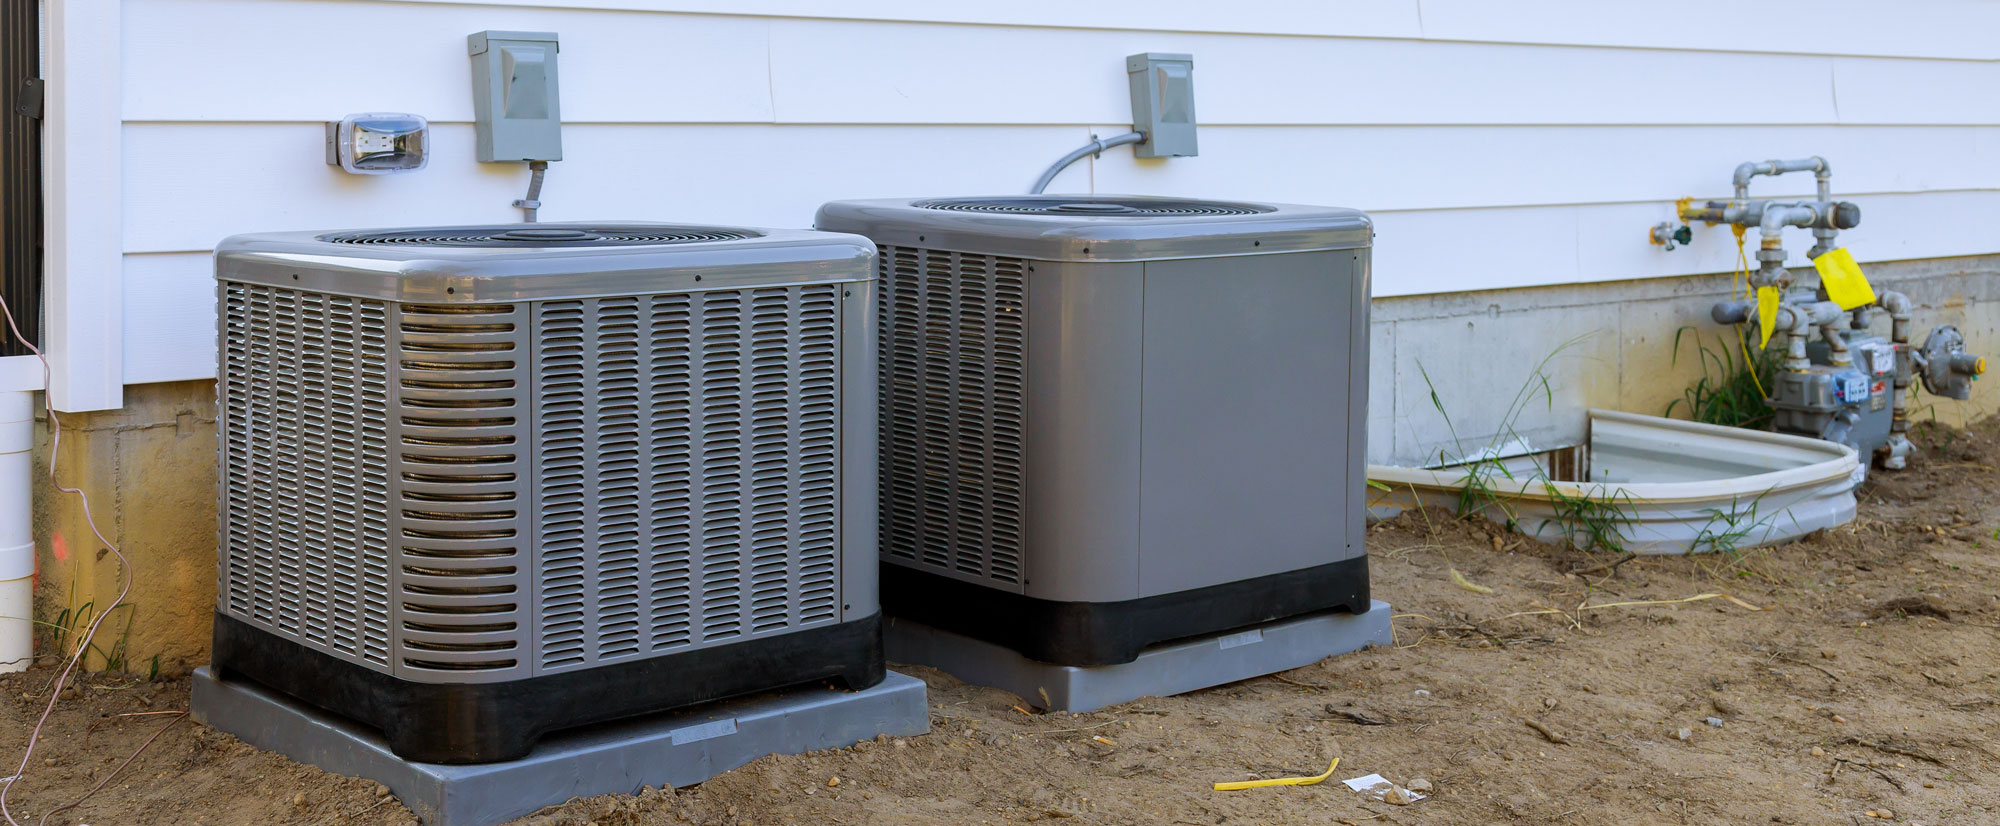 Heating & Cooling Services in Virginia, USA